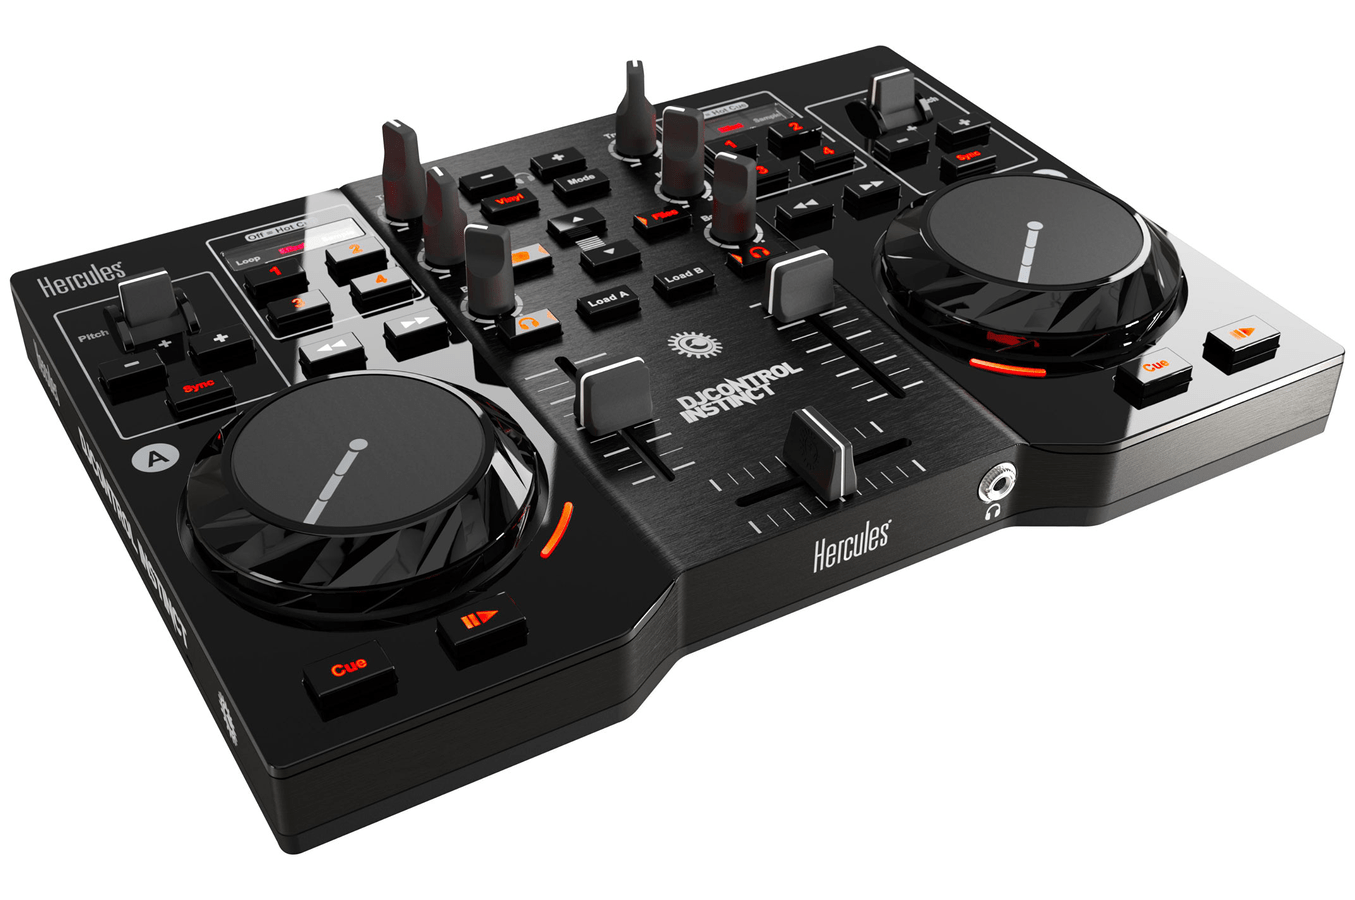 Mesa De Mezclas Amazon Table De Mixage Hercules Dj Control Instinct